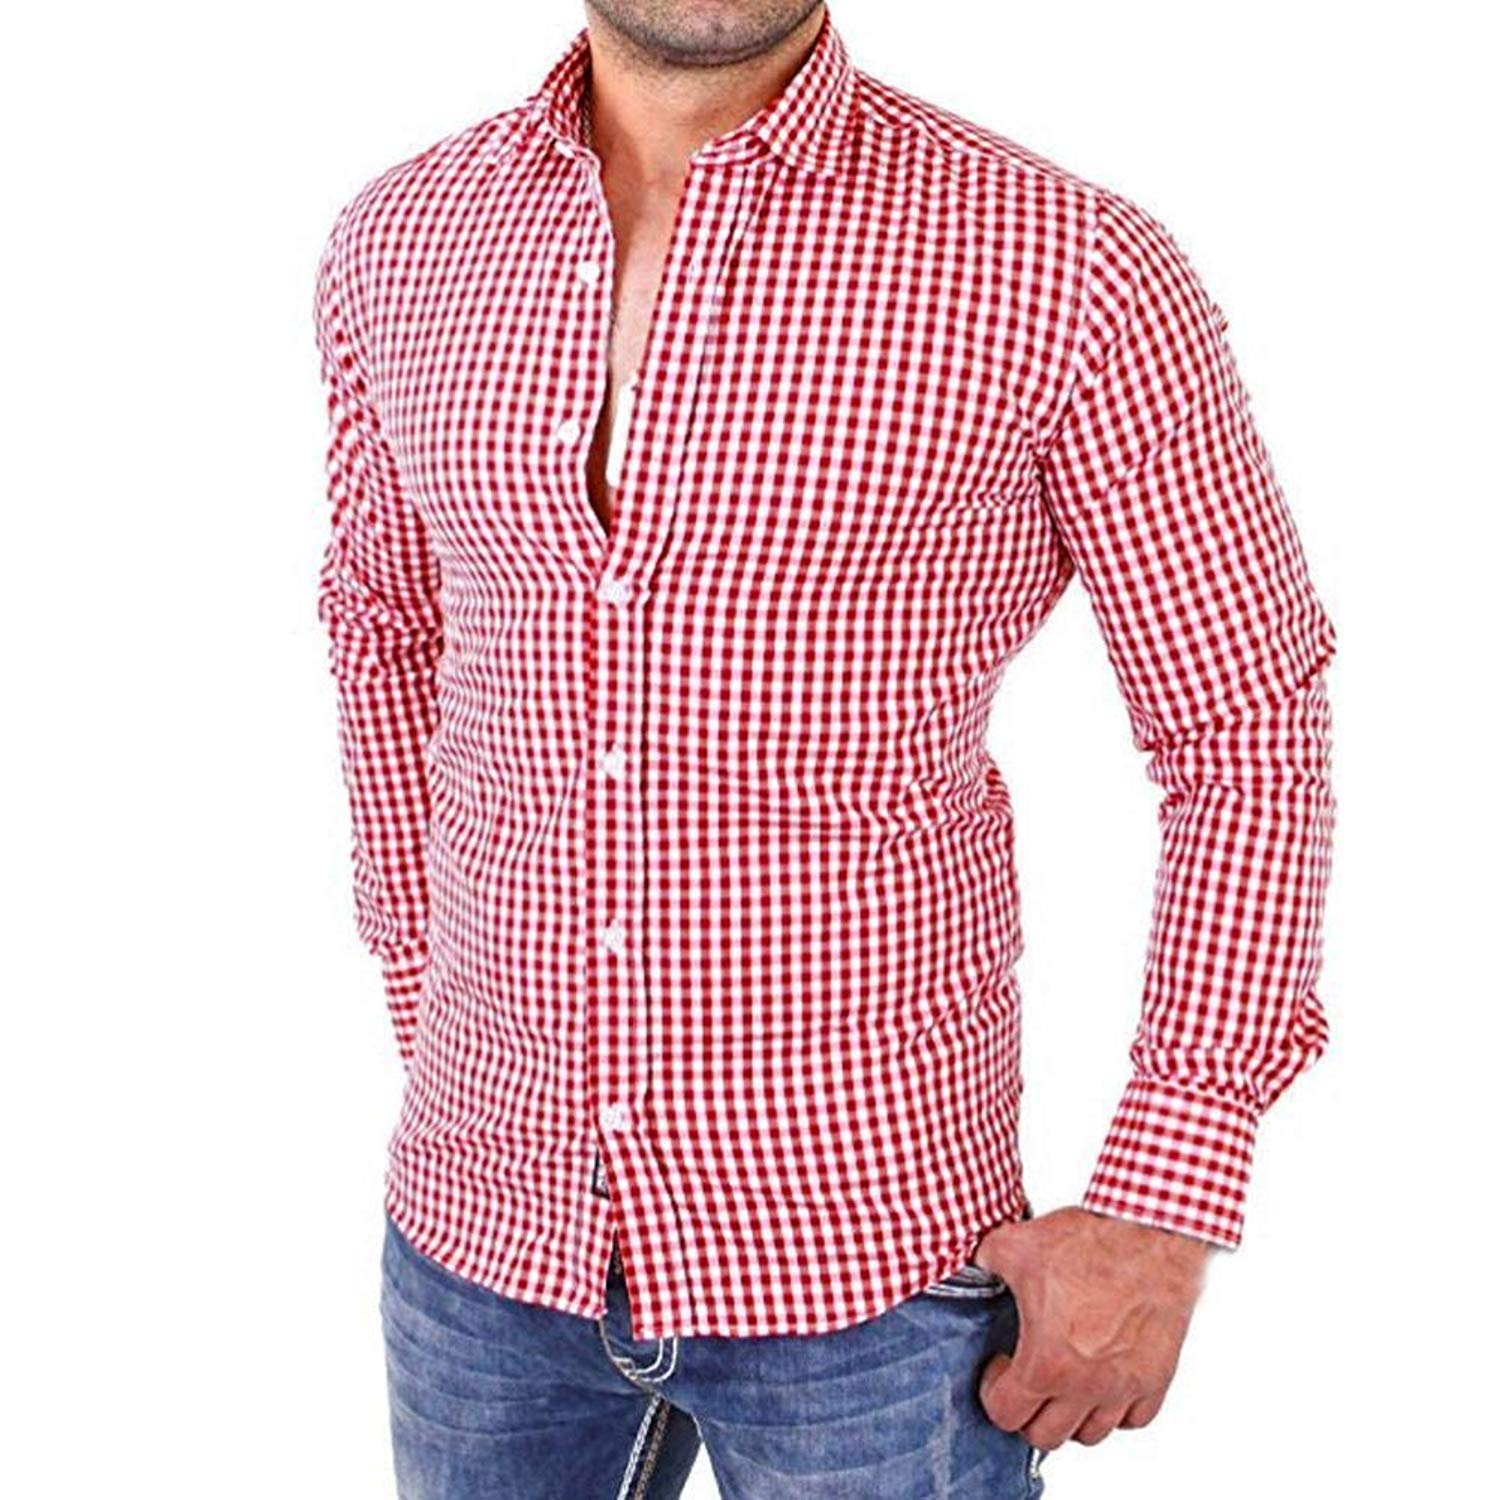 PHOTNO Mens Shirts,Men Slim Fit Plaid Long Sleeve Button Down Blouse Tops Dress Shirts M-2XL